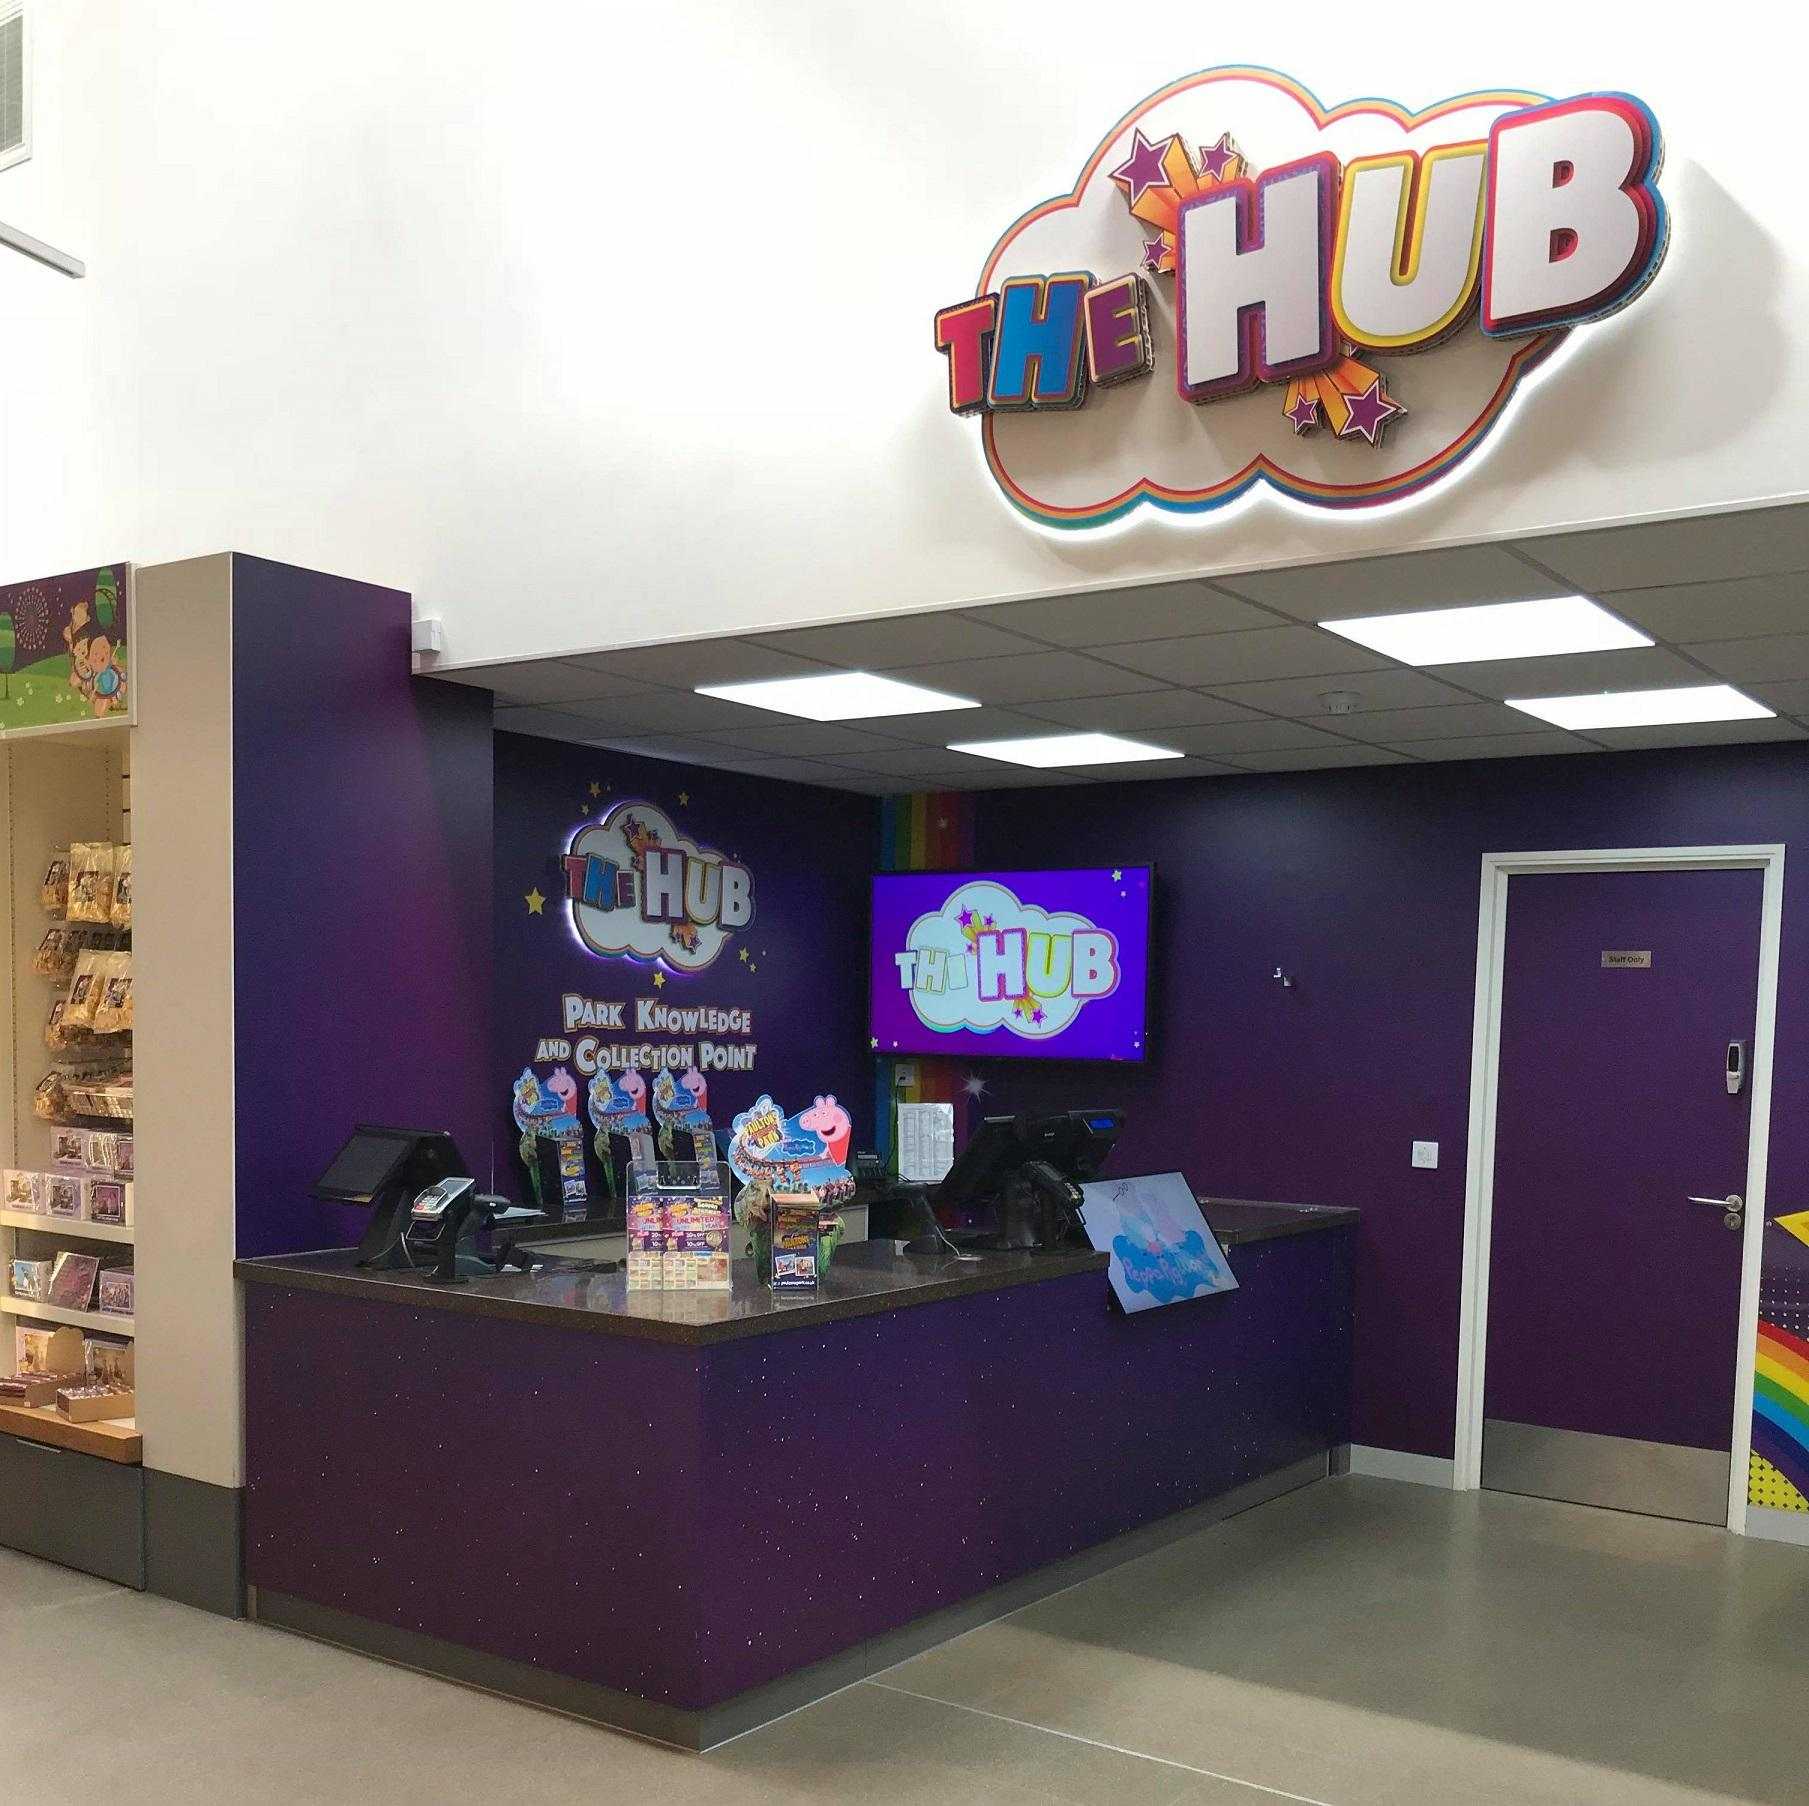 The Hub – A brand new Park Knowledge and Collection Point